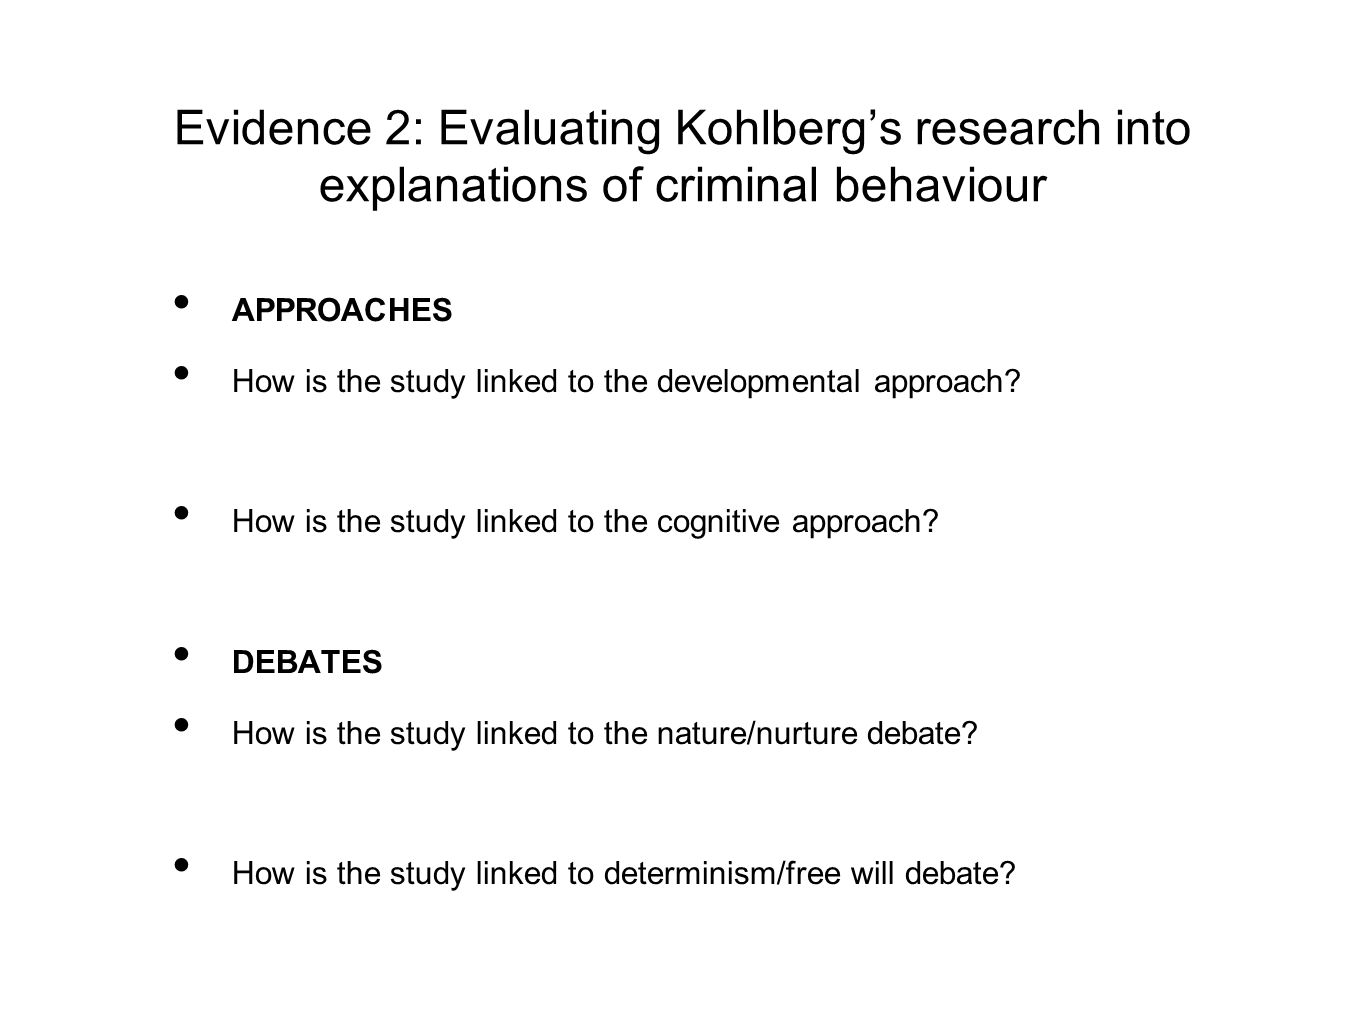 Evidence 2: Evaluating Kohlberg's research into explanations of criminal behaviour APPROACHES How is the study linked to the developmental approach? H